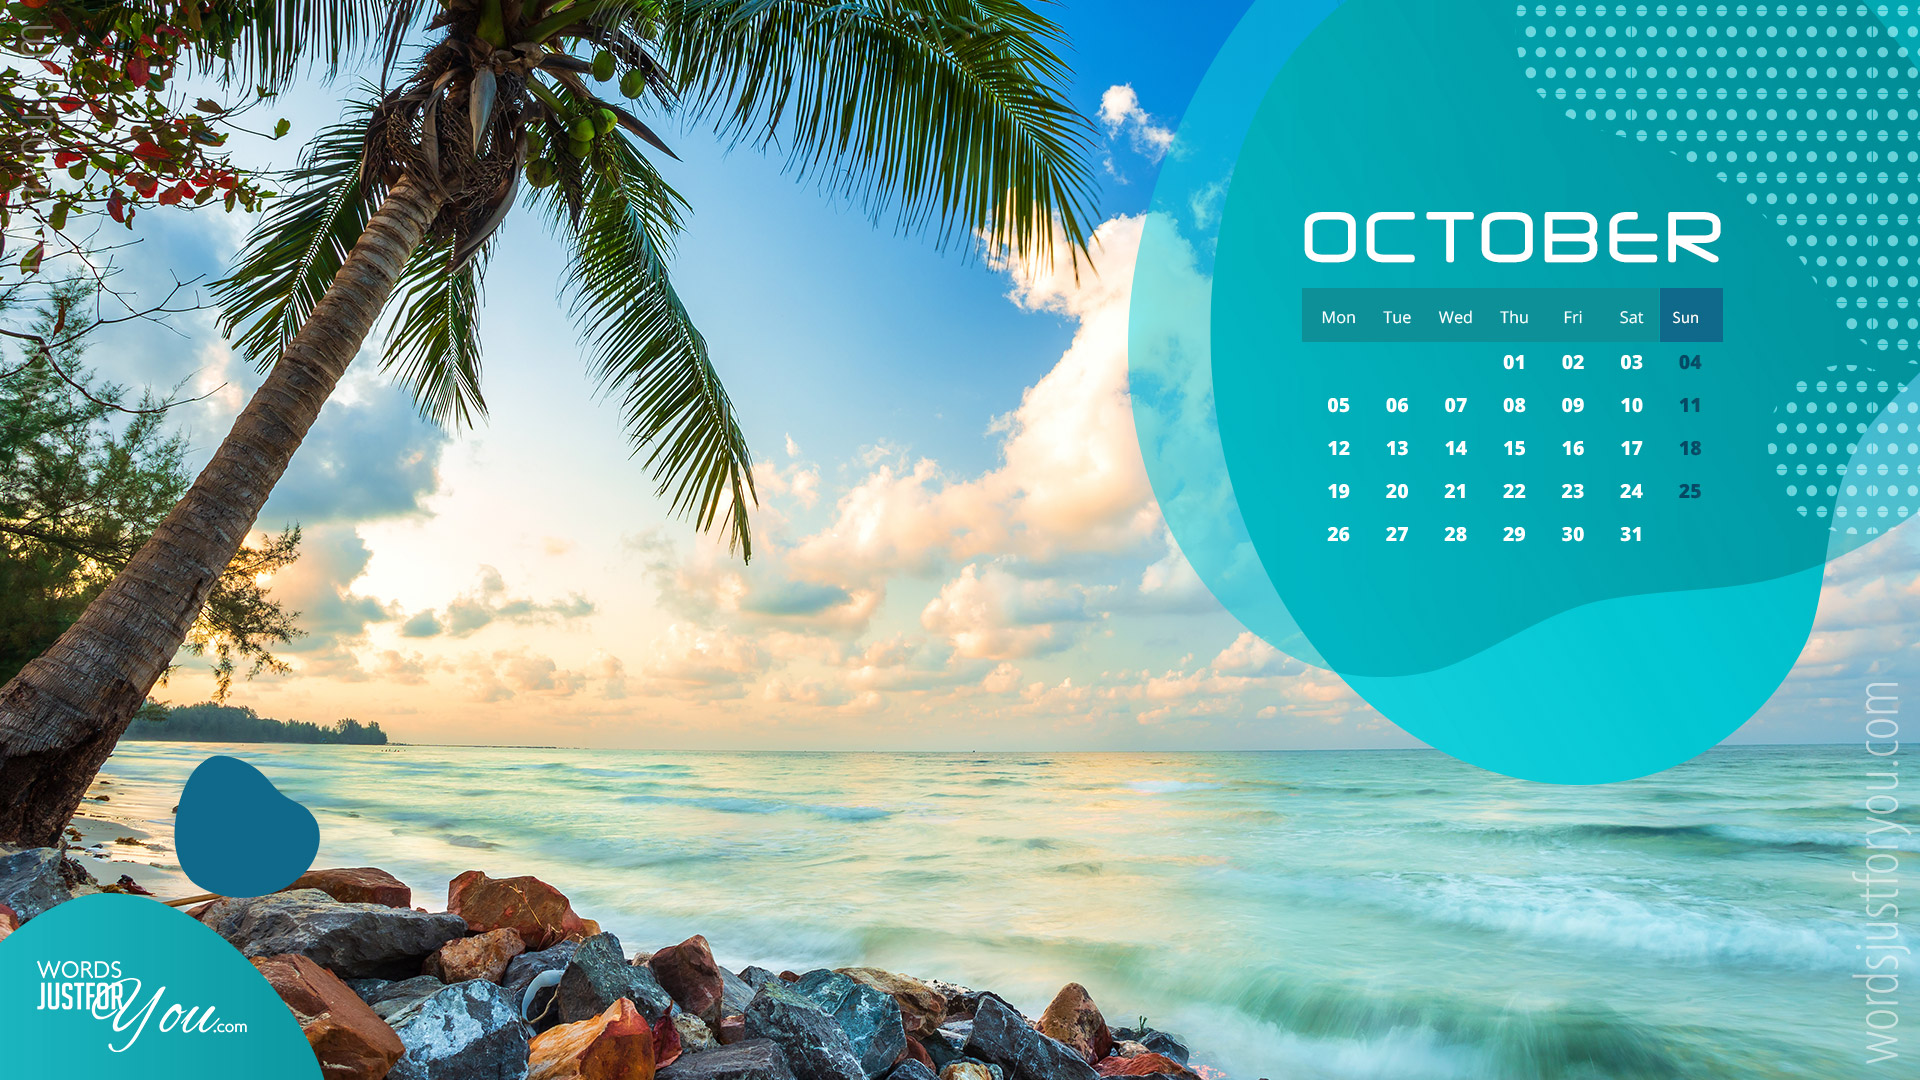 5x HD October 2020 Calendar Wallpaper 6574 Words Just for You 1920x1080